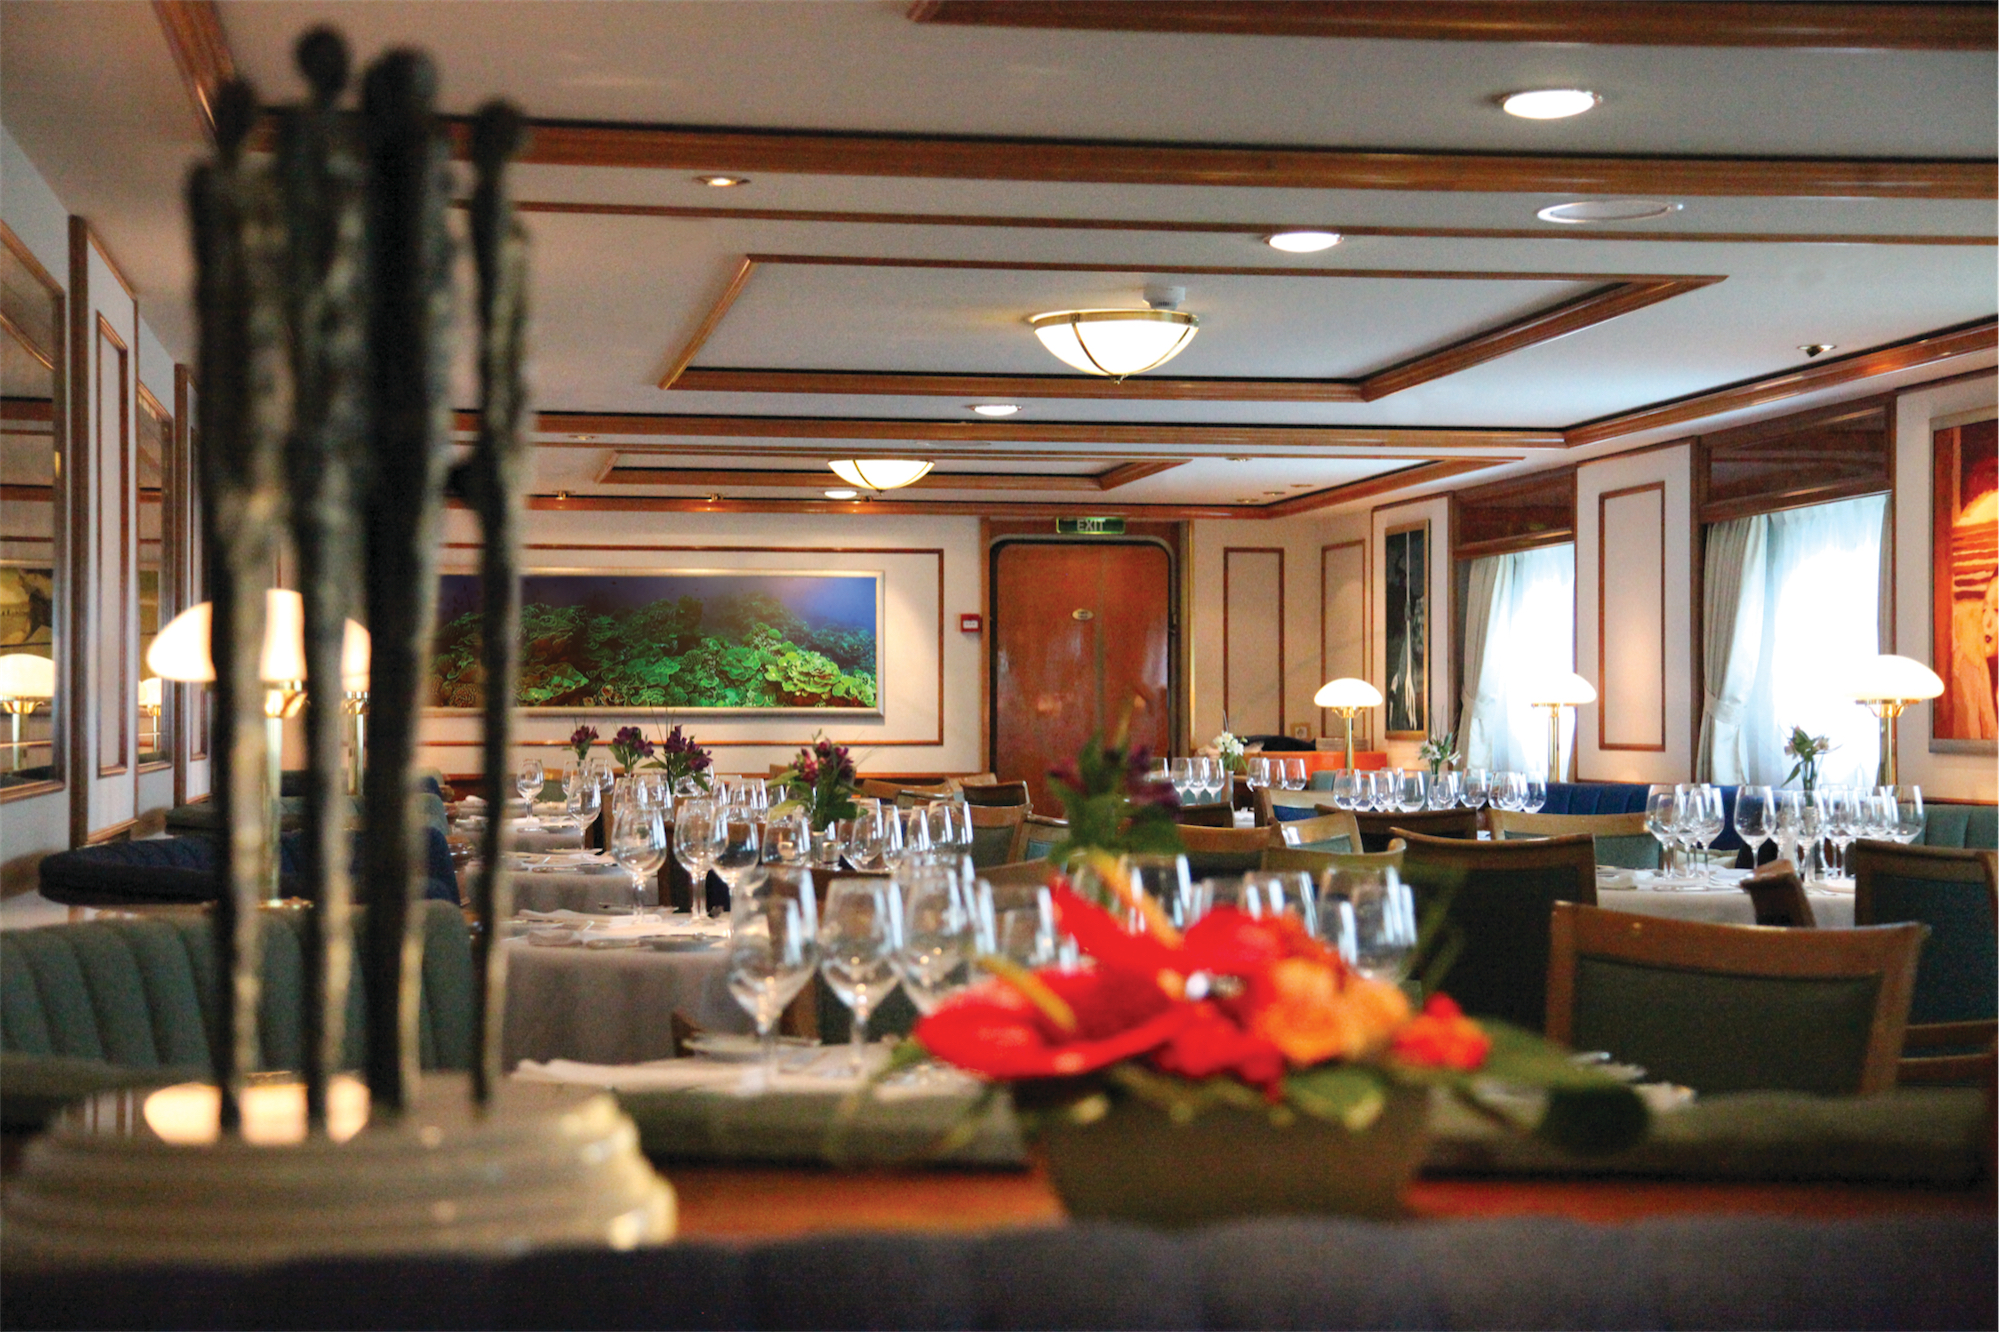 Lindblad Expeditions National Geographic Orion Interior Restaurant.jpg